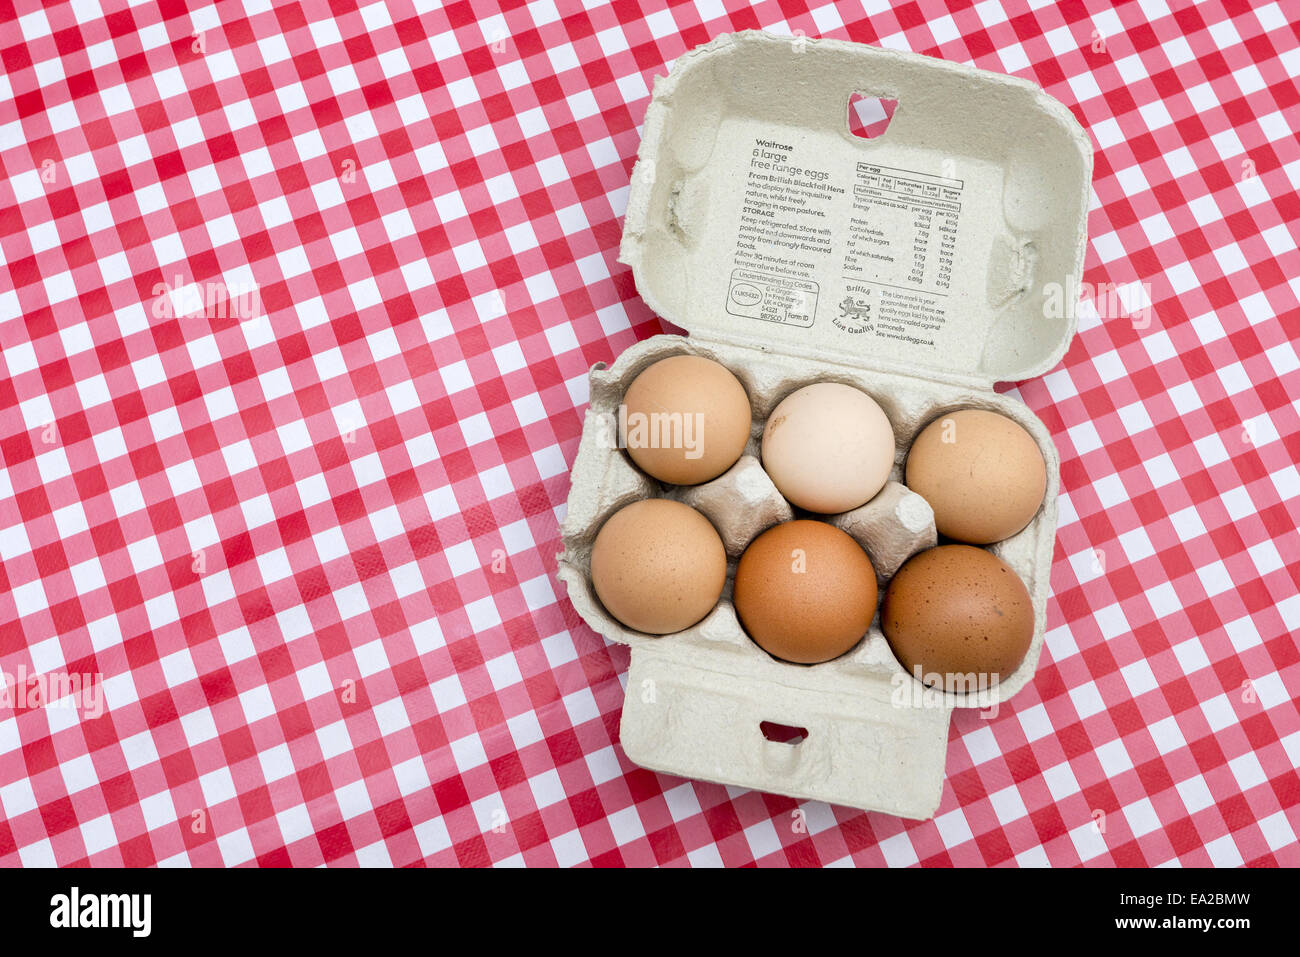 Free range eggs in open egg box on red check tablecloth - Stock Image